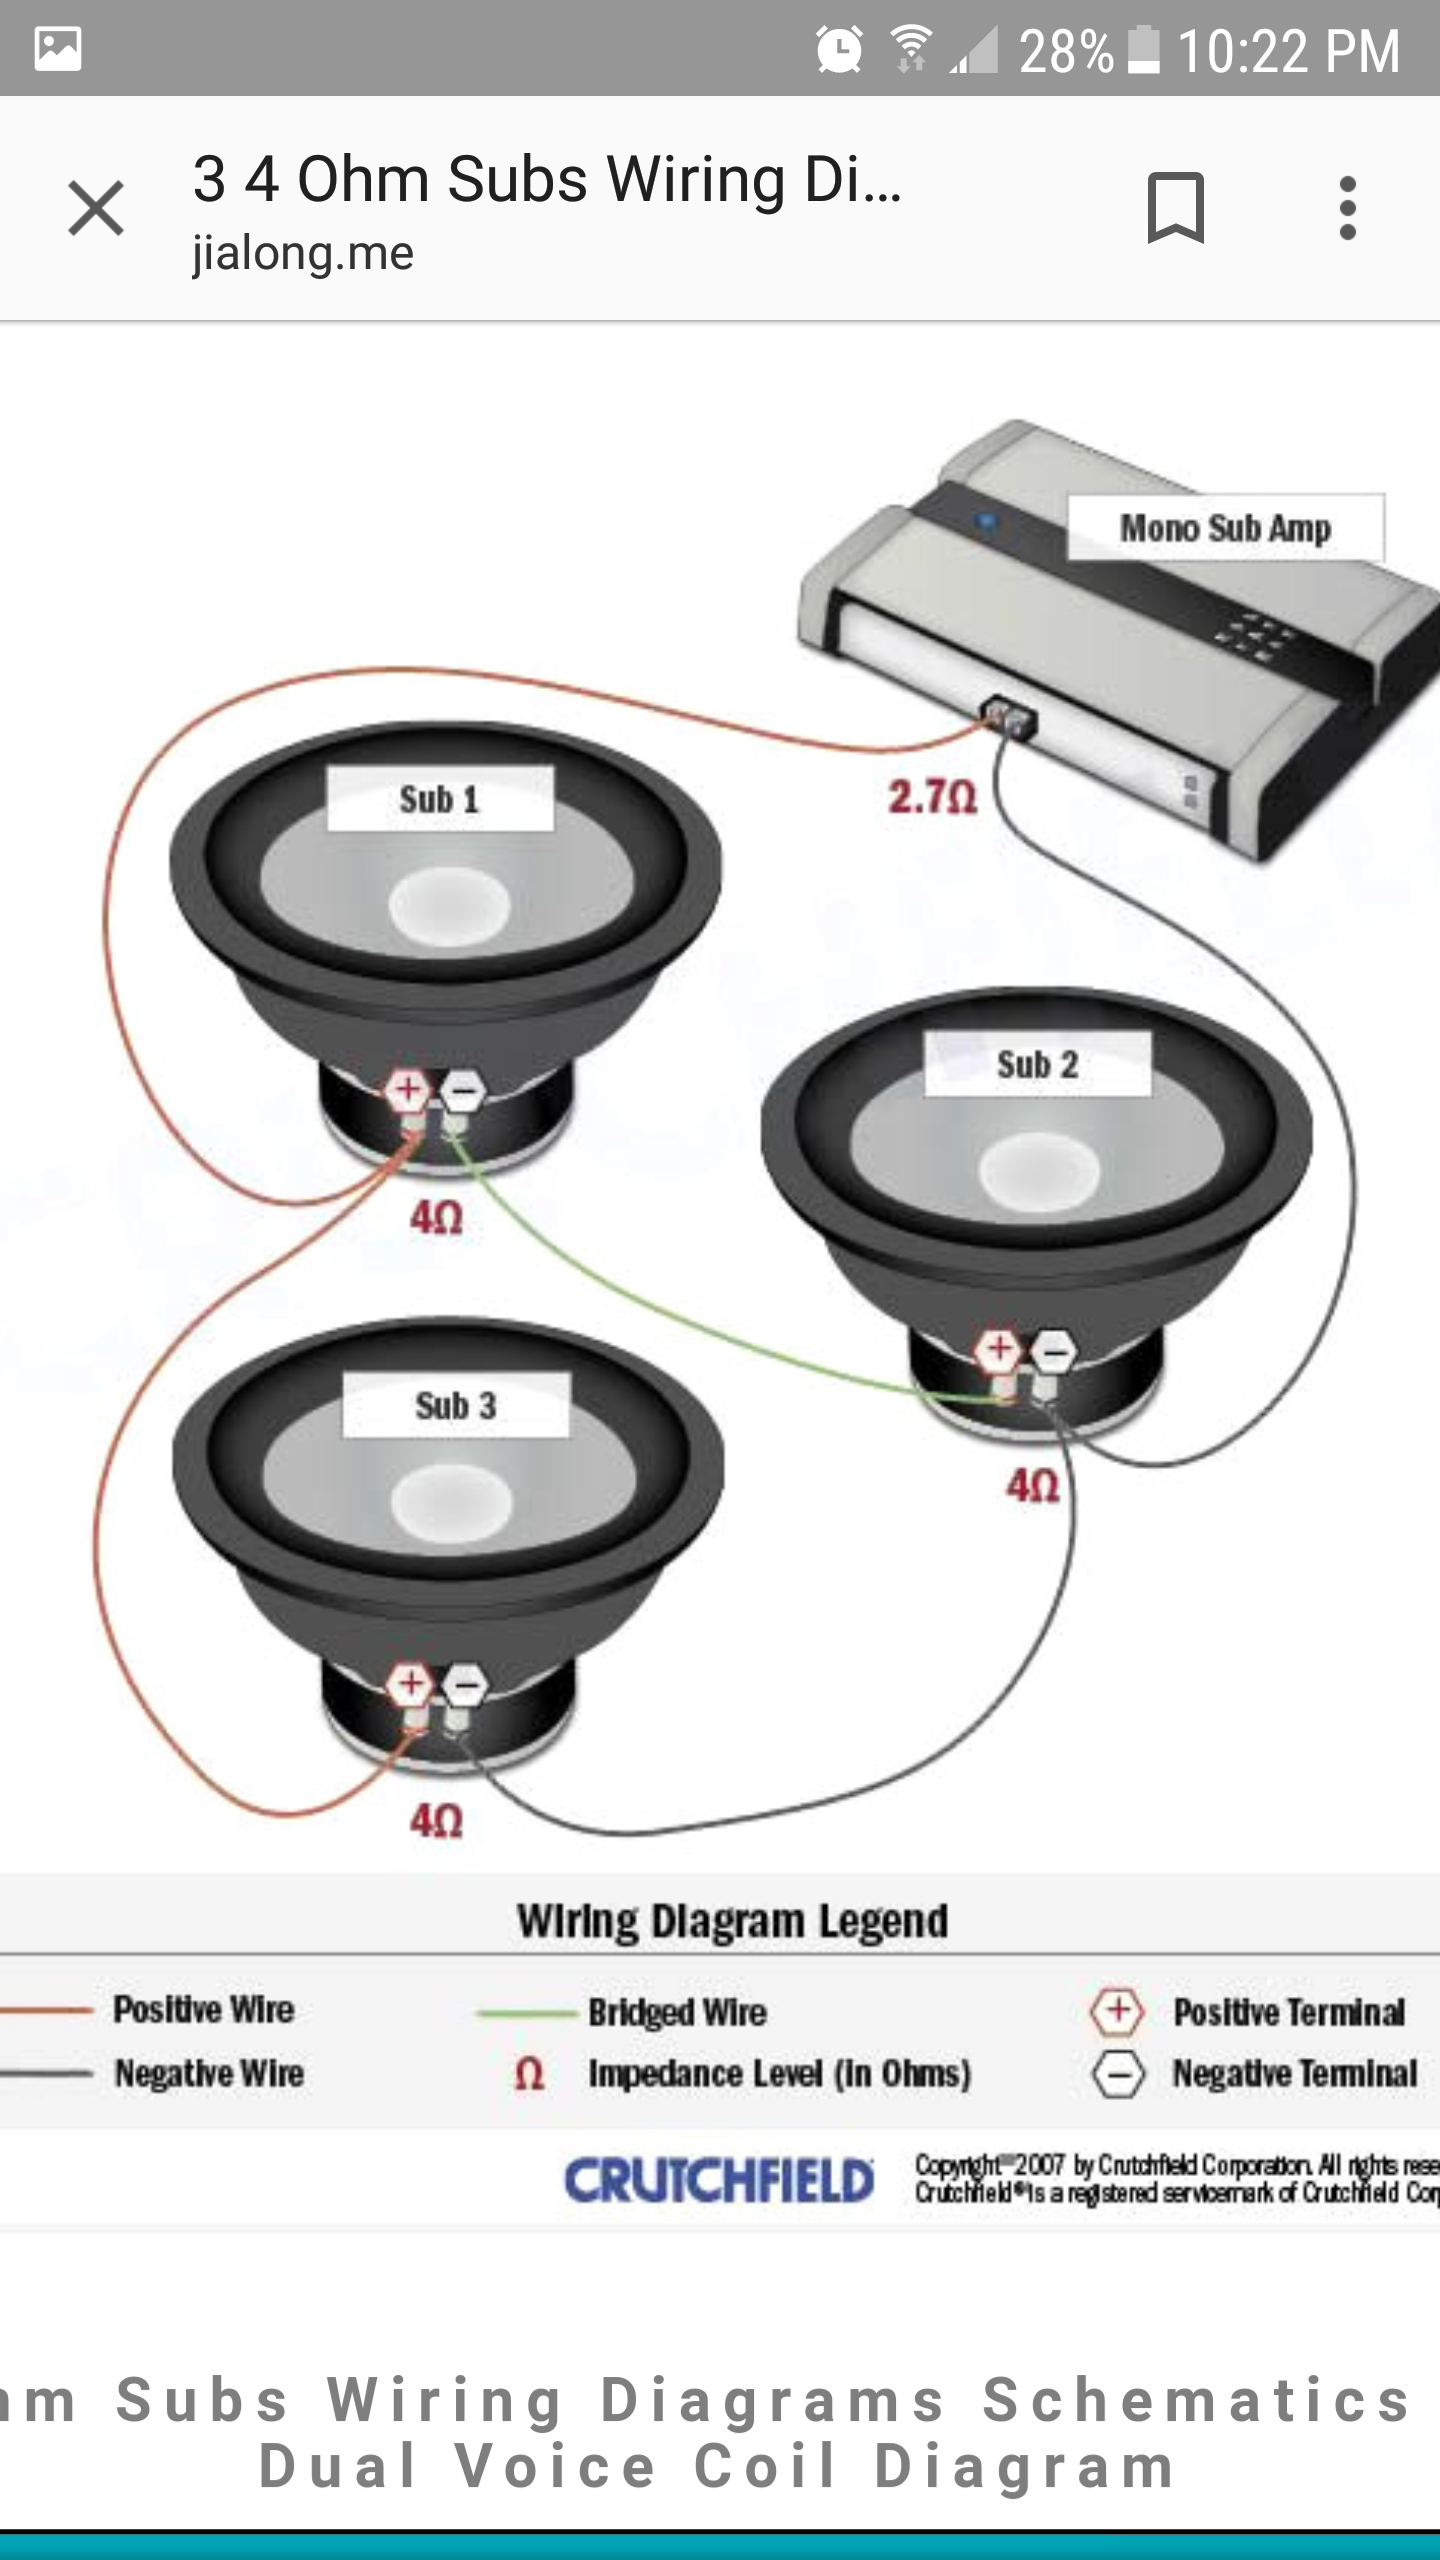 Does This Look Right Polk Audio Subwoofer Wiring Diagram Dual Voice Coil Speaker A Dofrat9ur10c